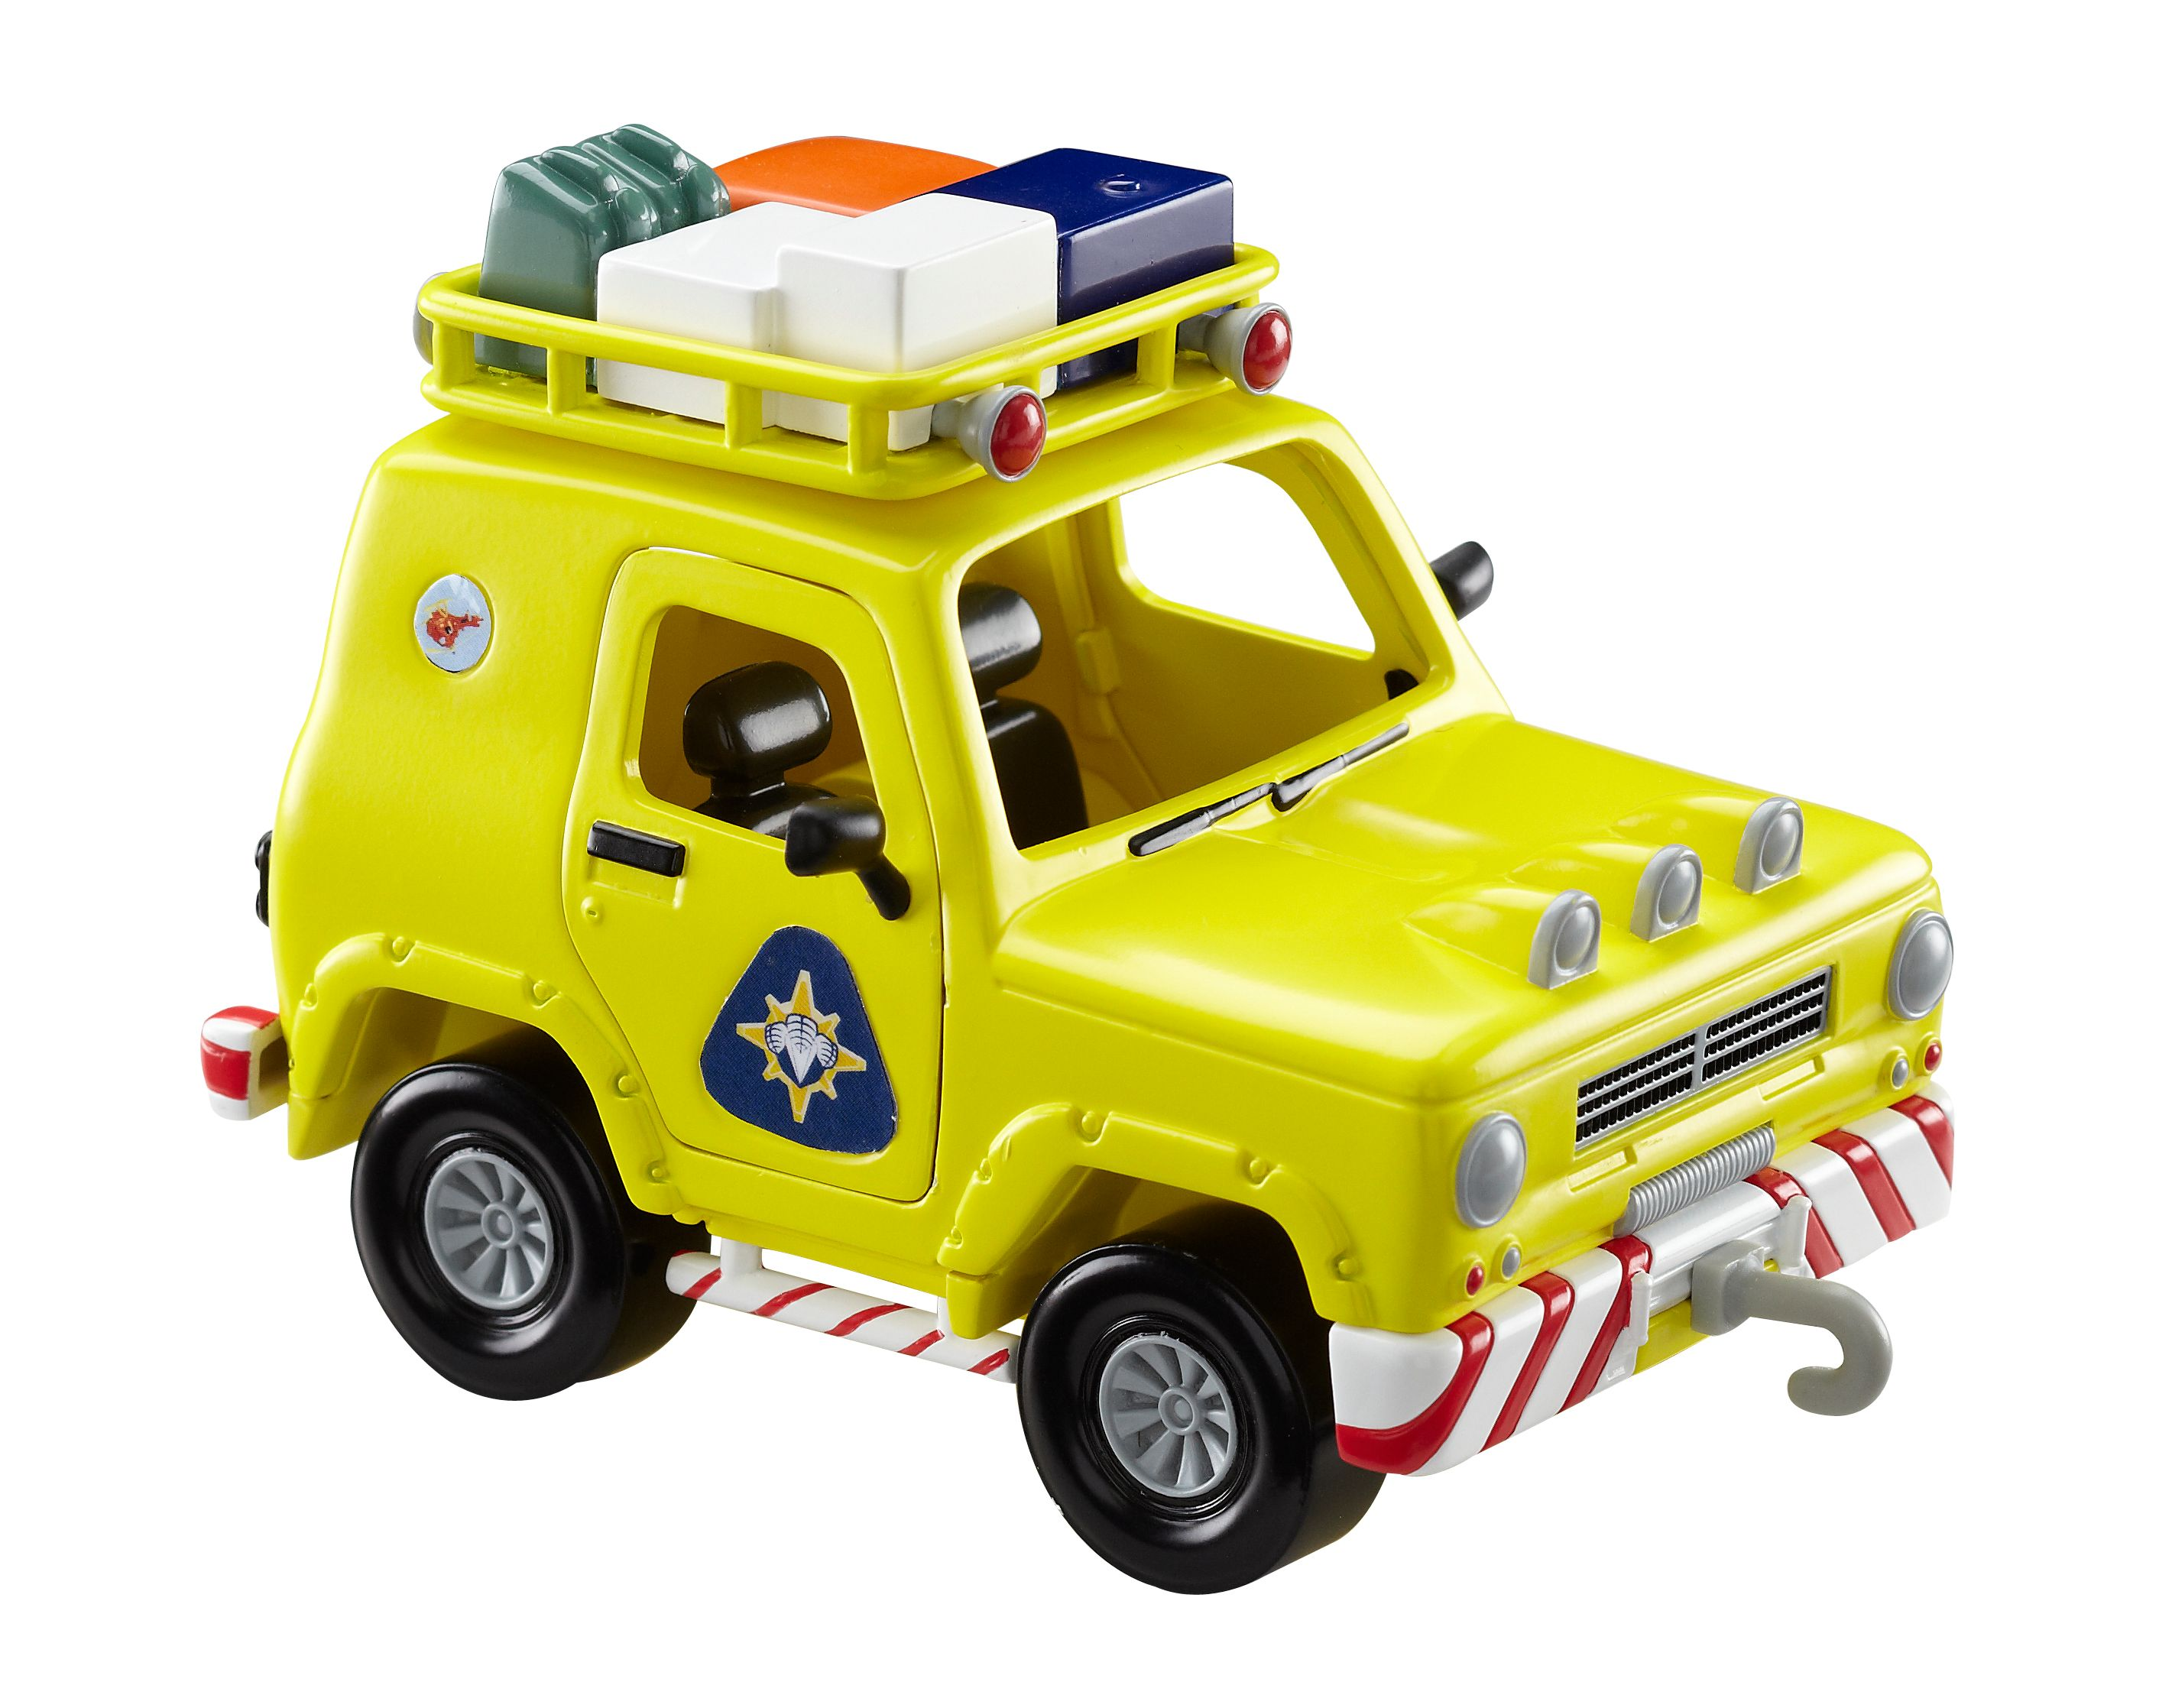 Vehicle and Accessory Set - Mountain Rescue 4 x 4